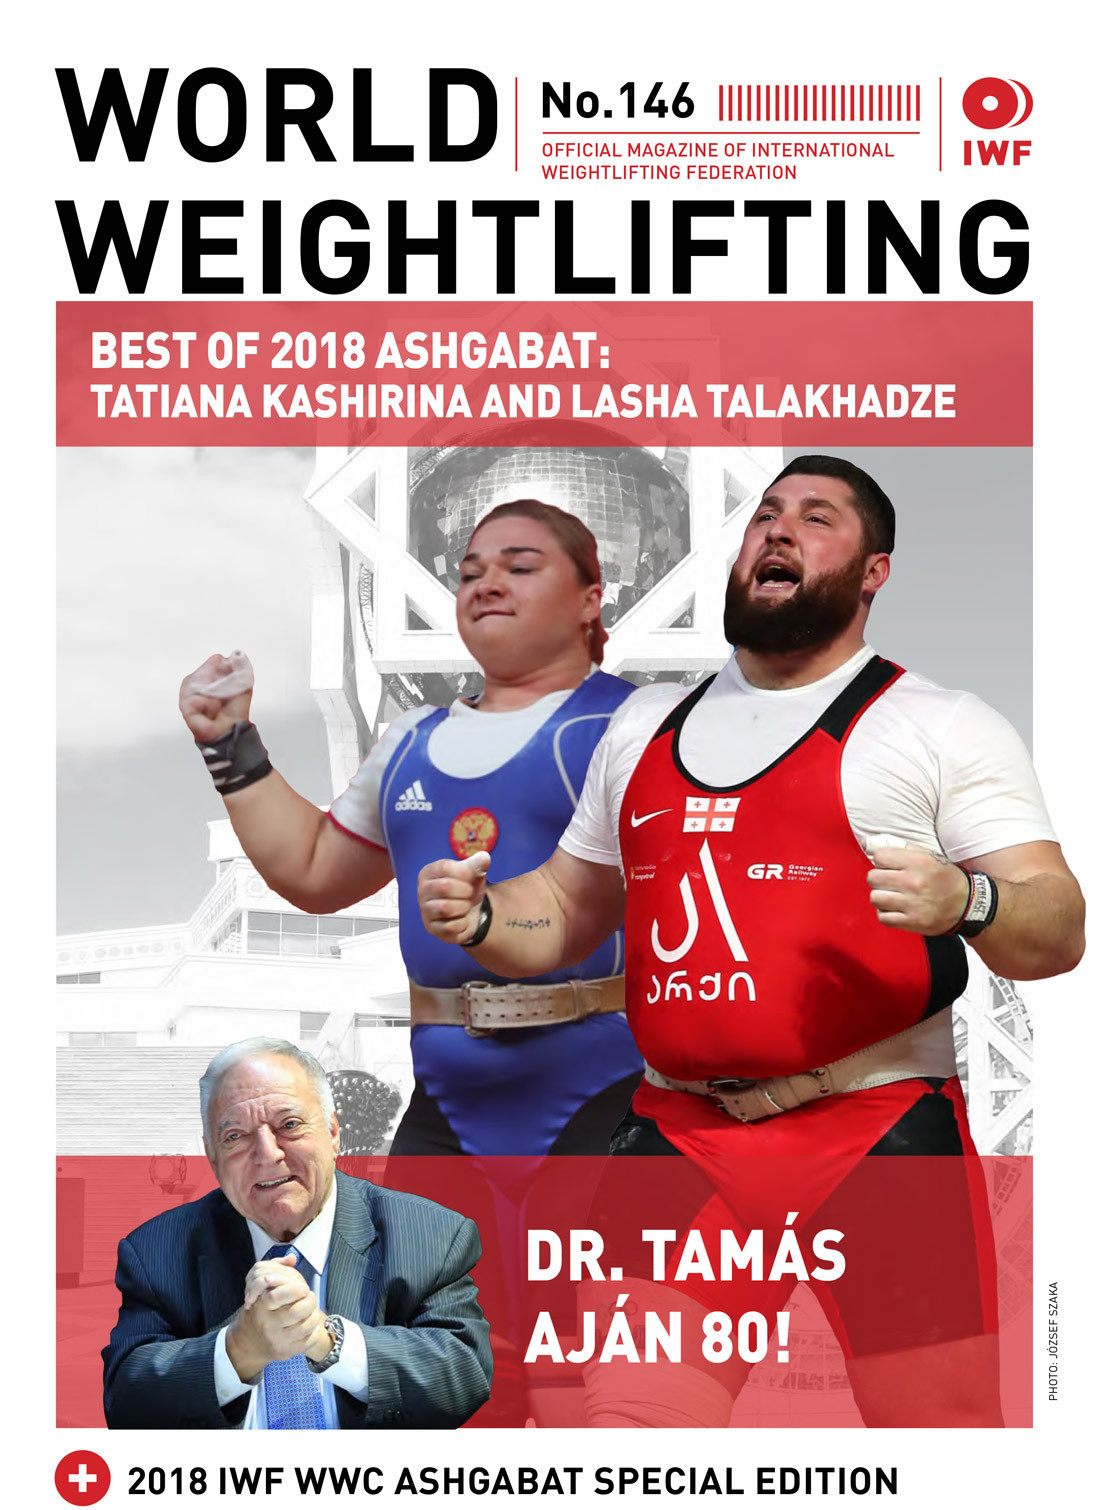 World Weightlifting Magazine No. 146